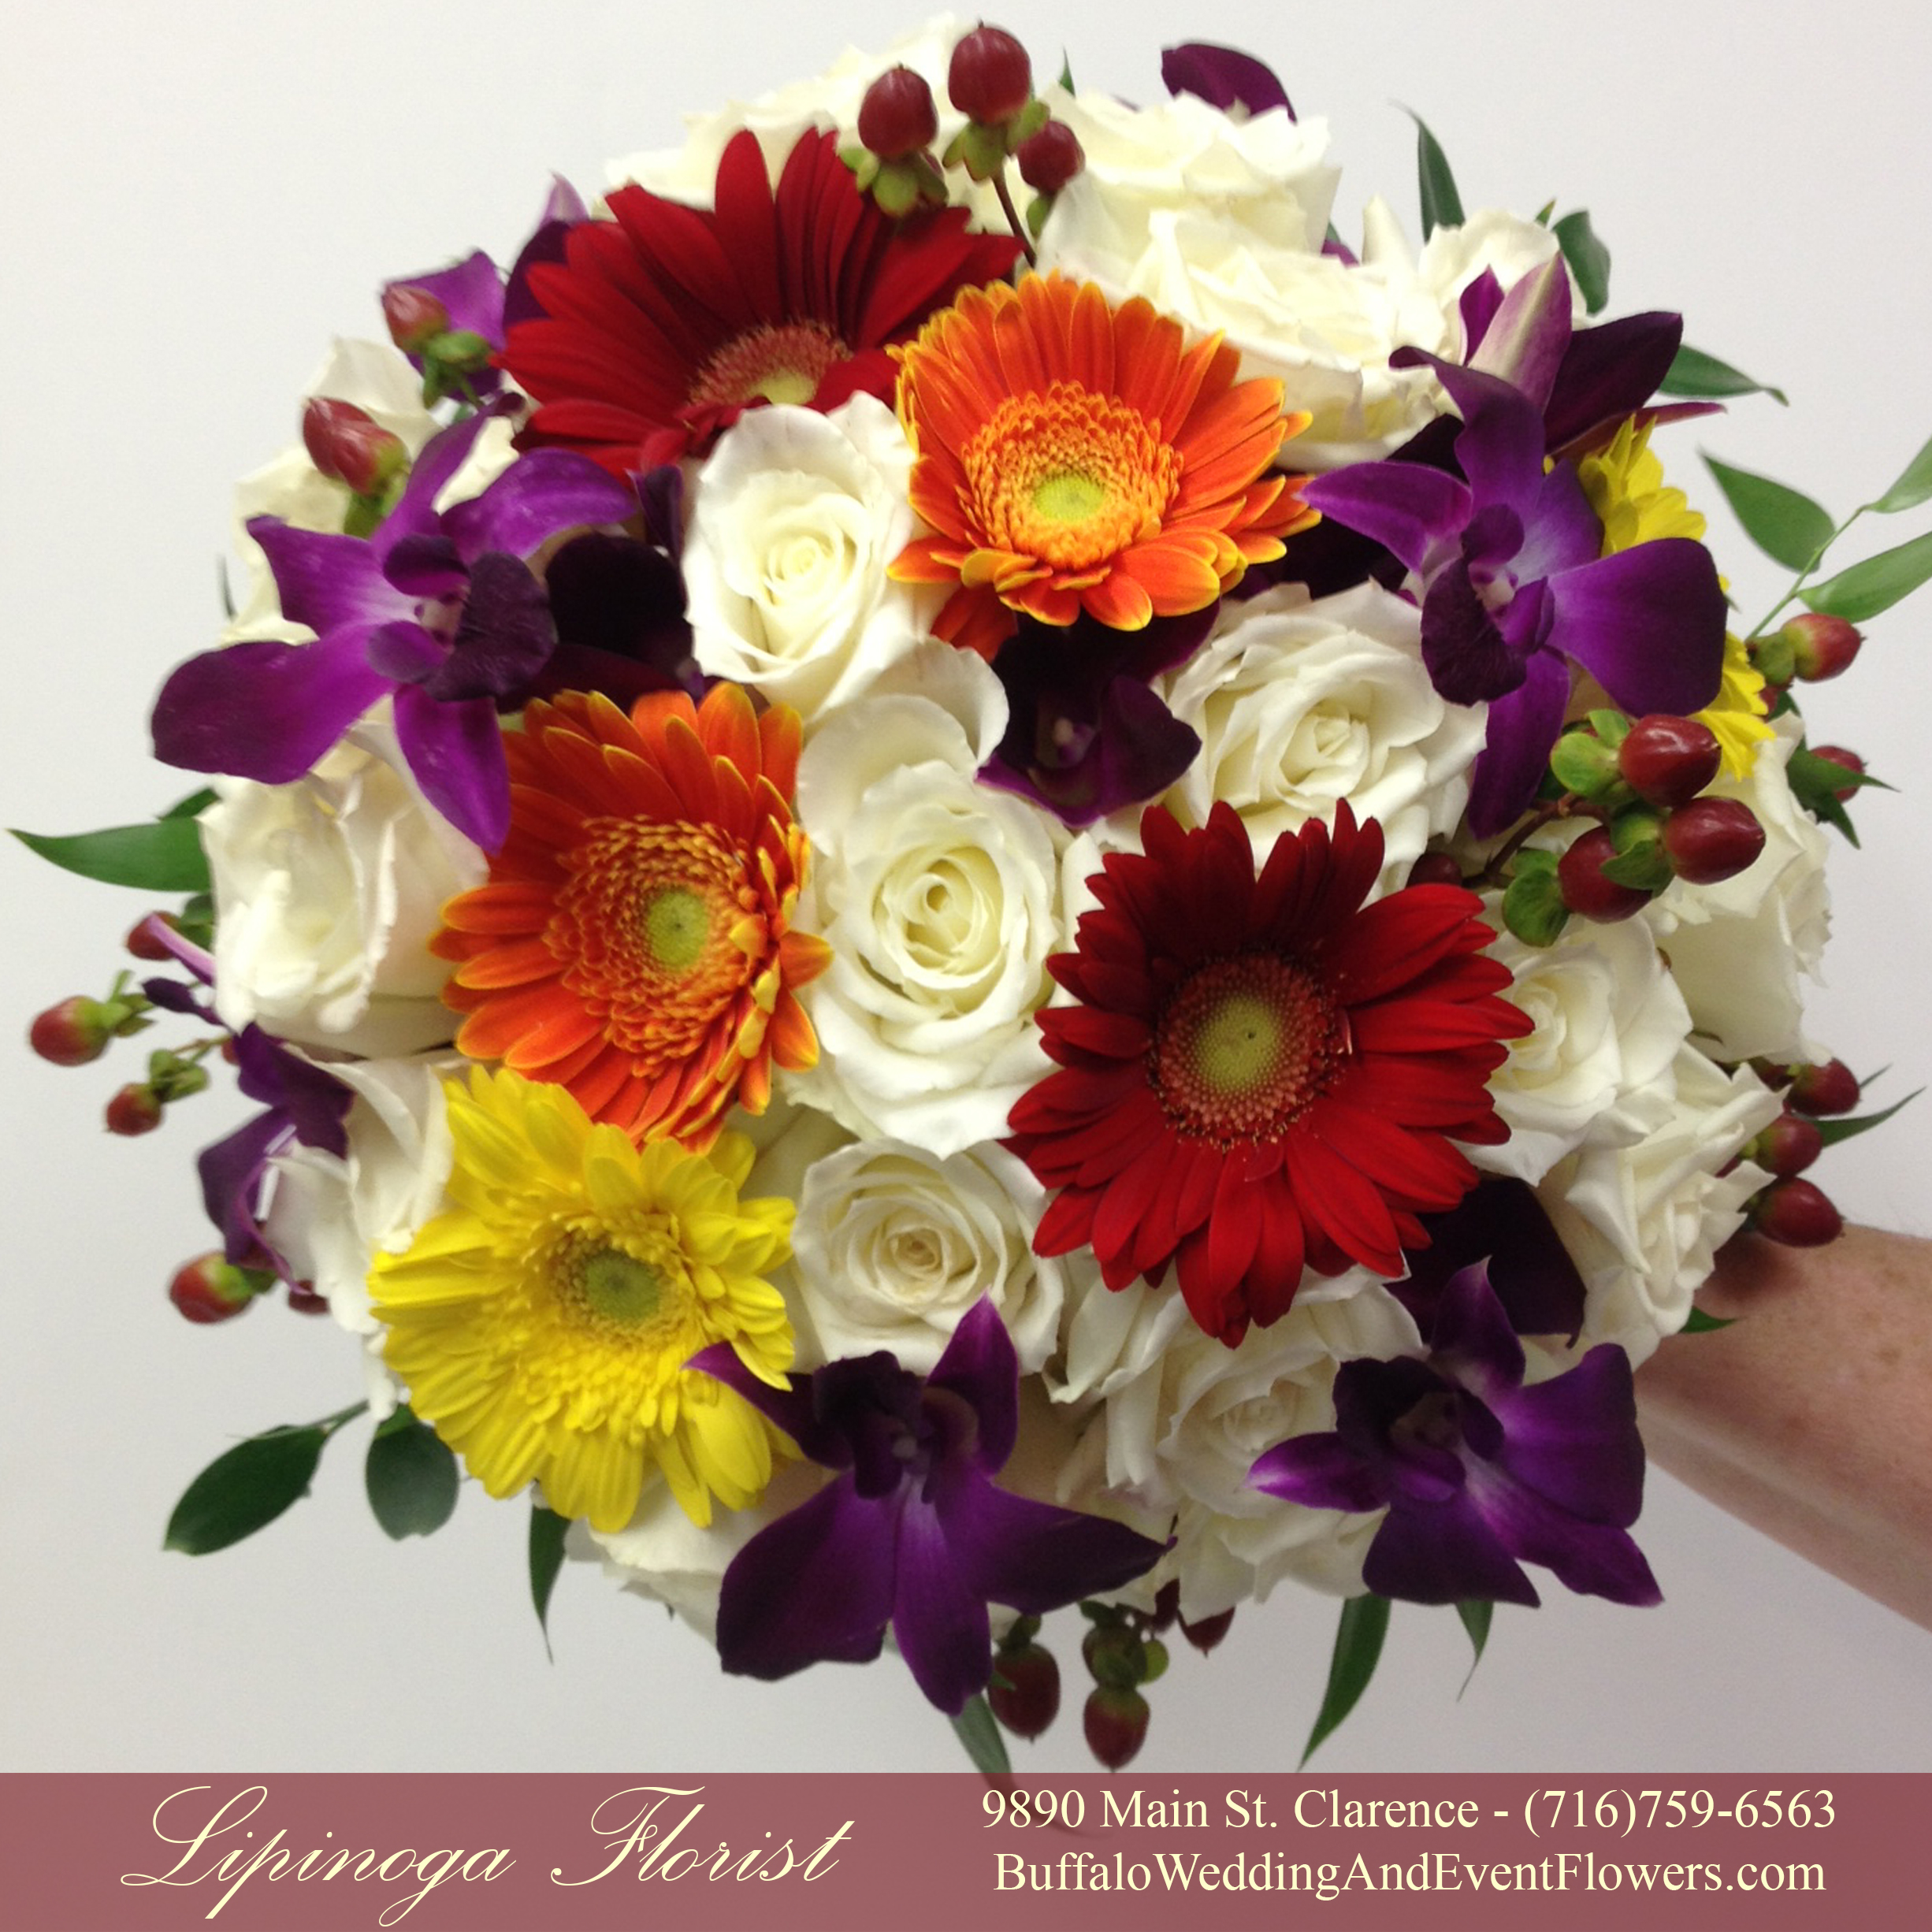 Fall Bridal Bouquets Buffalo Wedding Amp Event Flowers By